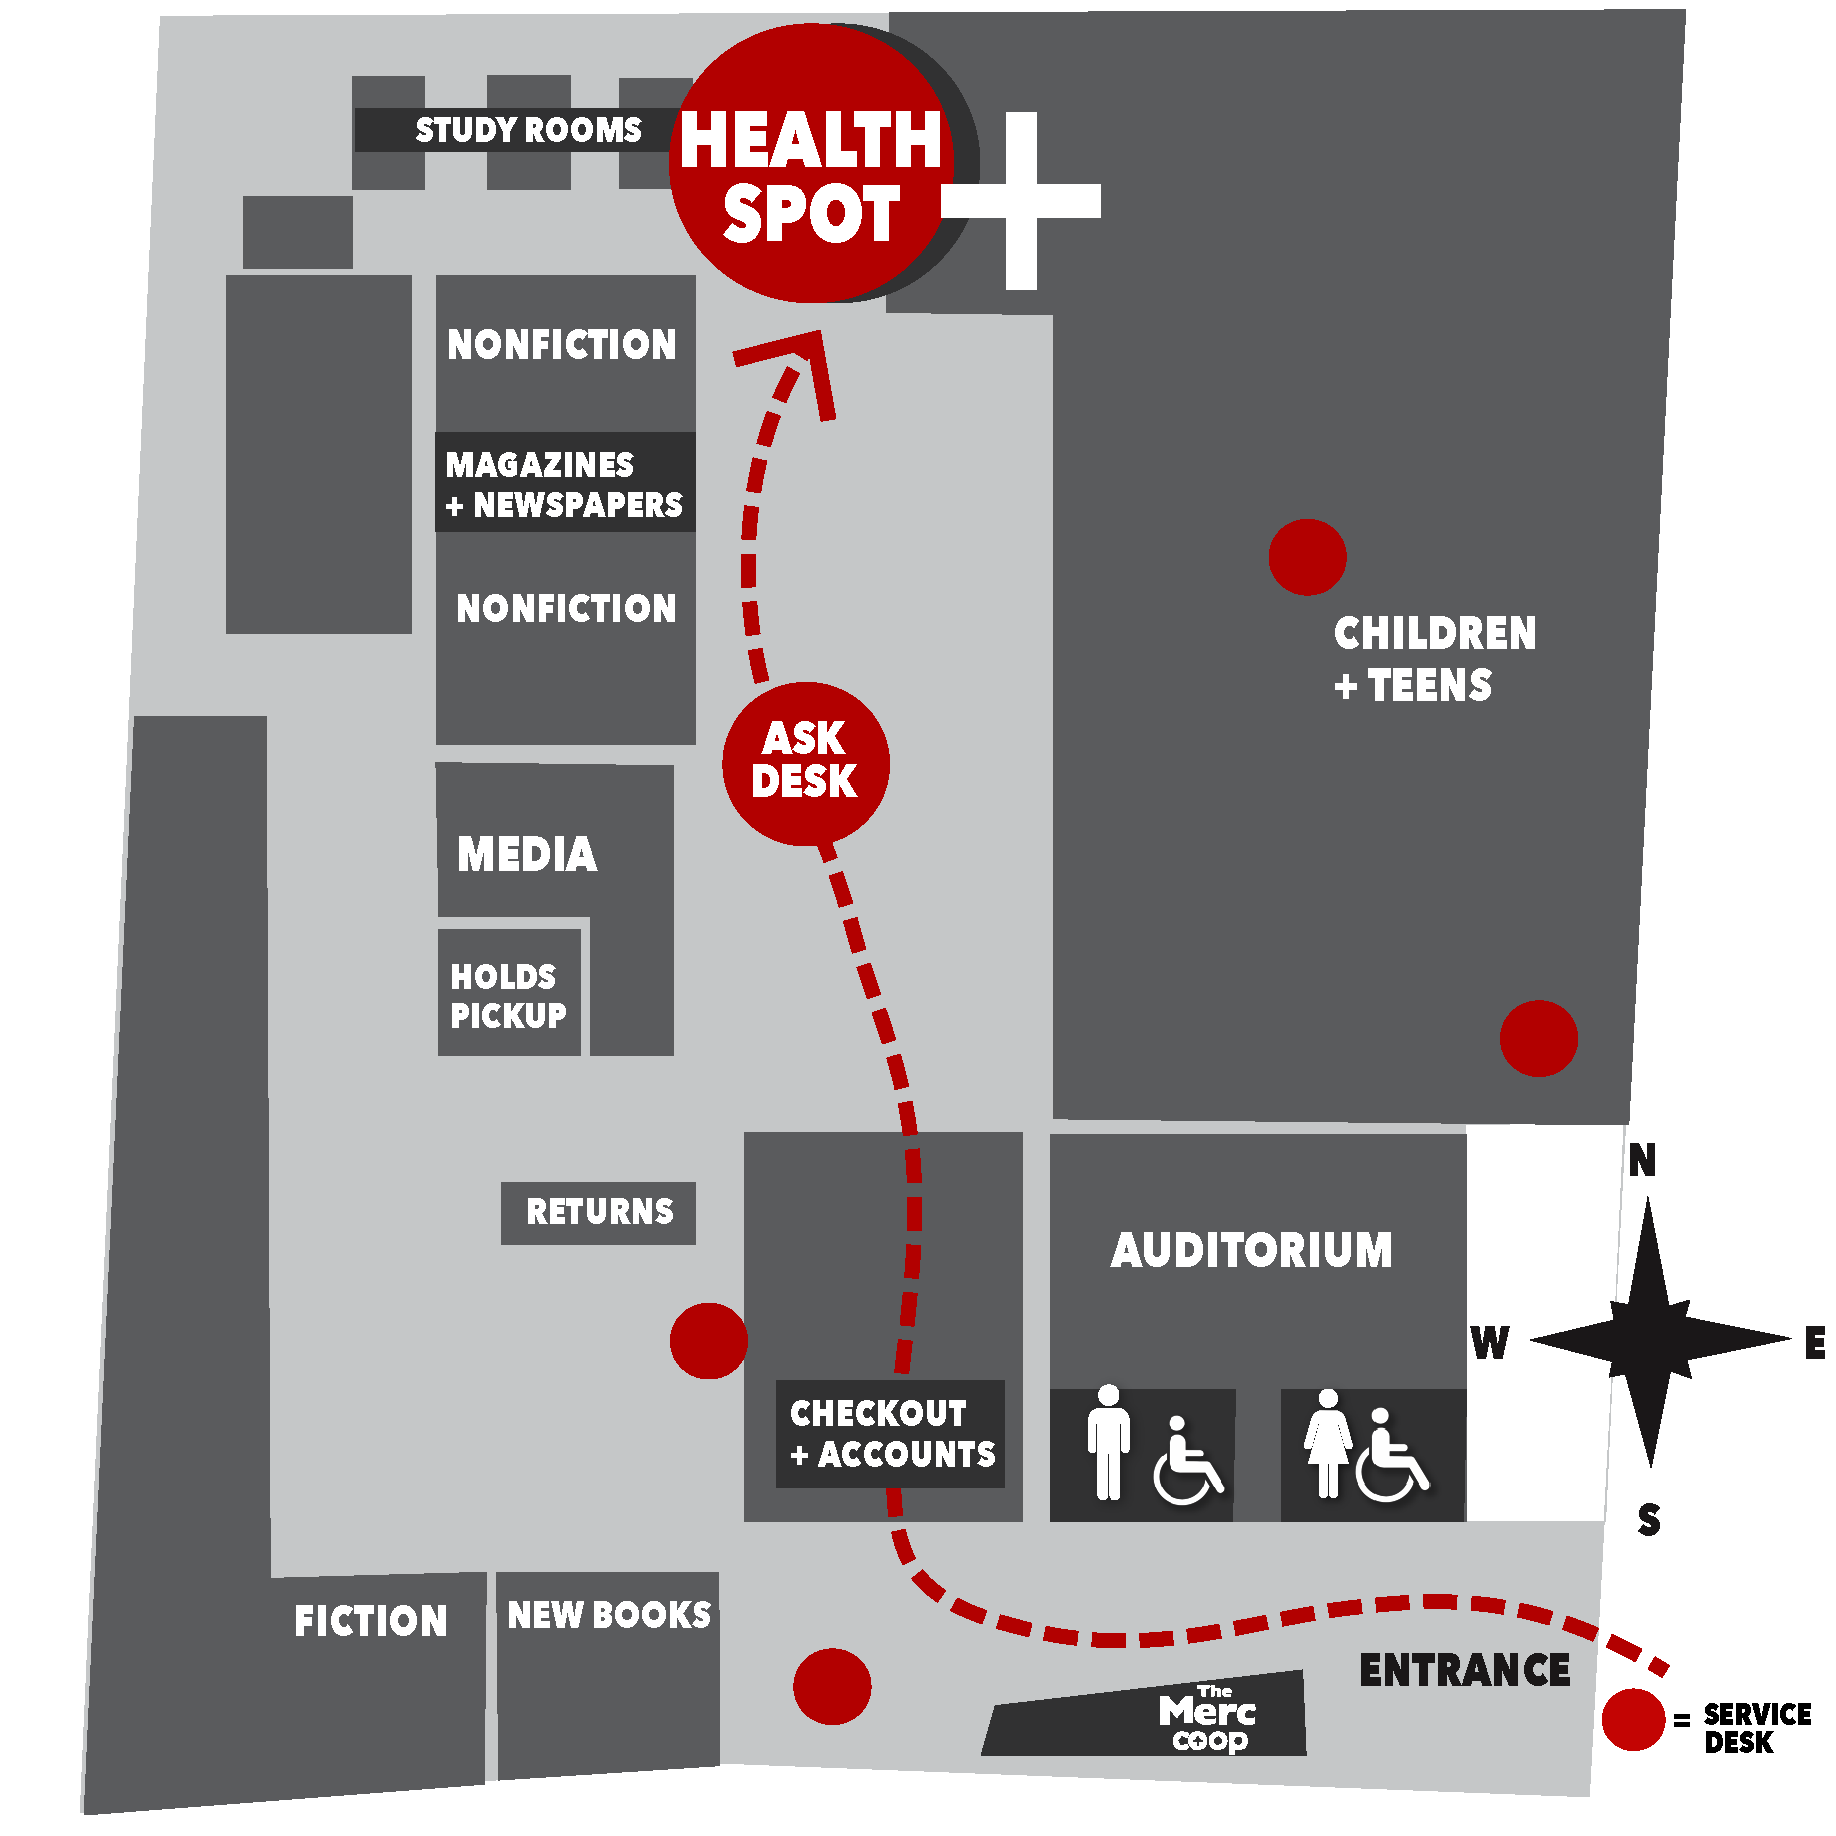 Health at the Library | Lawrence Public Library